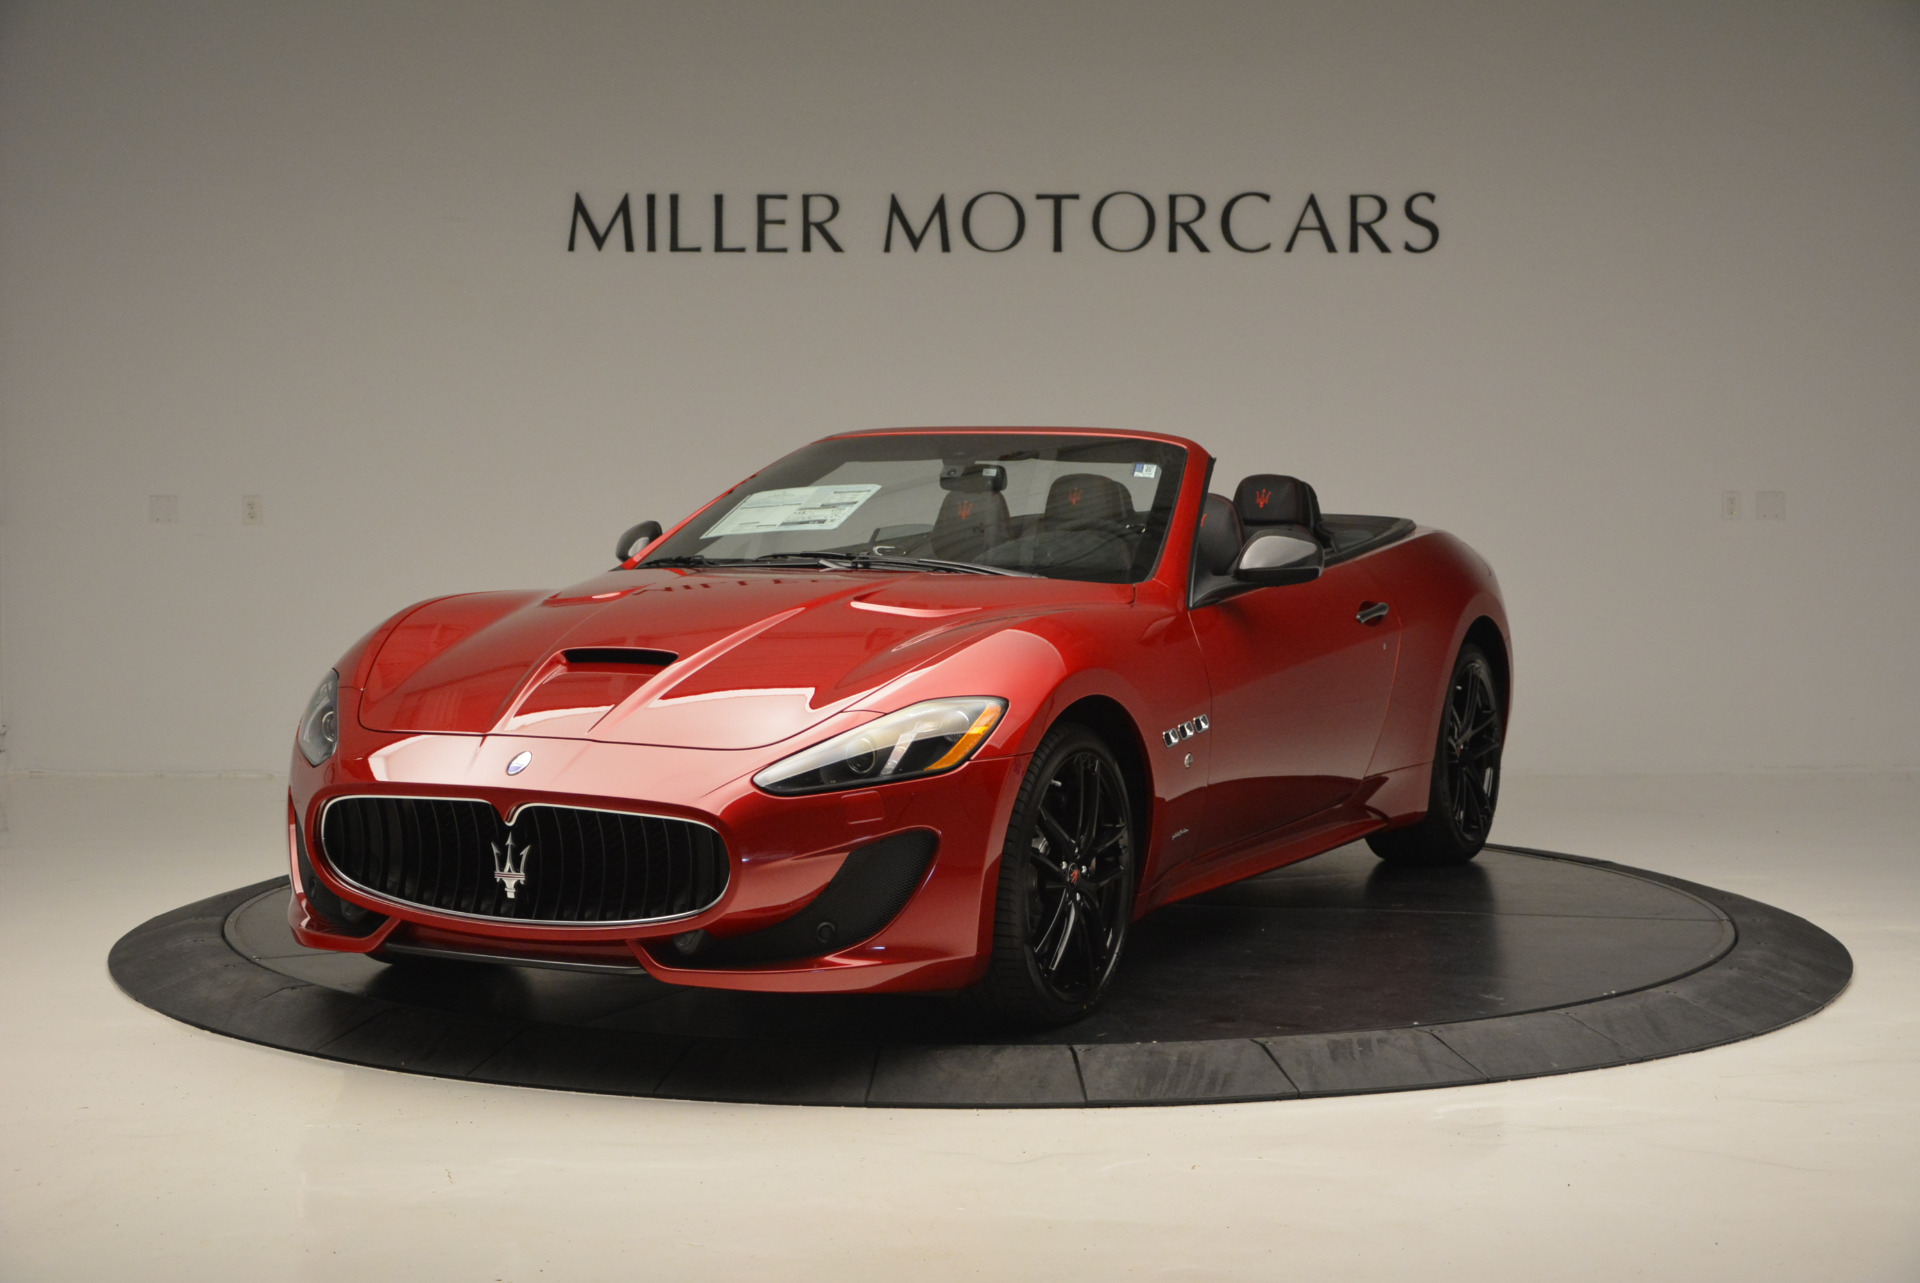 New 2017 Maserati GranTurismo Sport Special Edition for sale Sold at Bentley Greenwich in Greenwich CT 06830 1